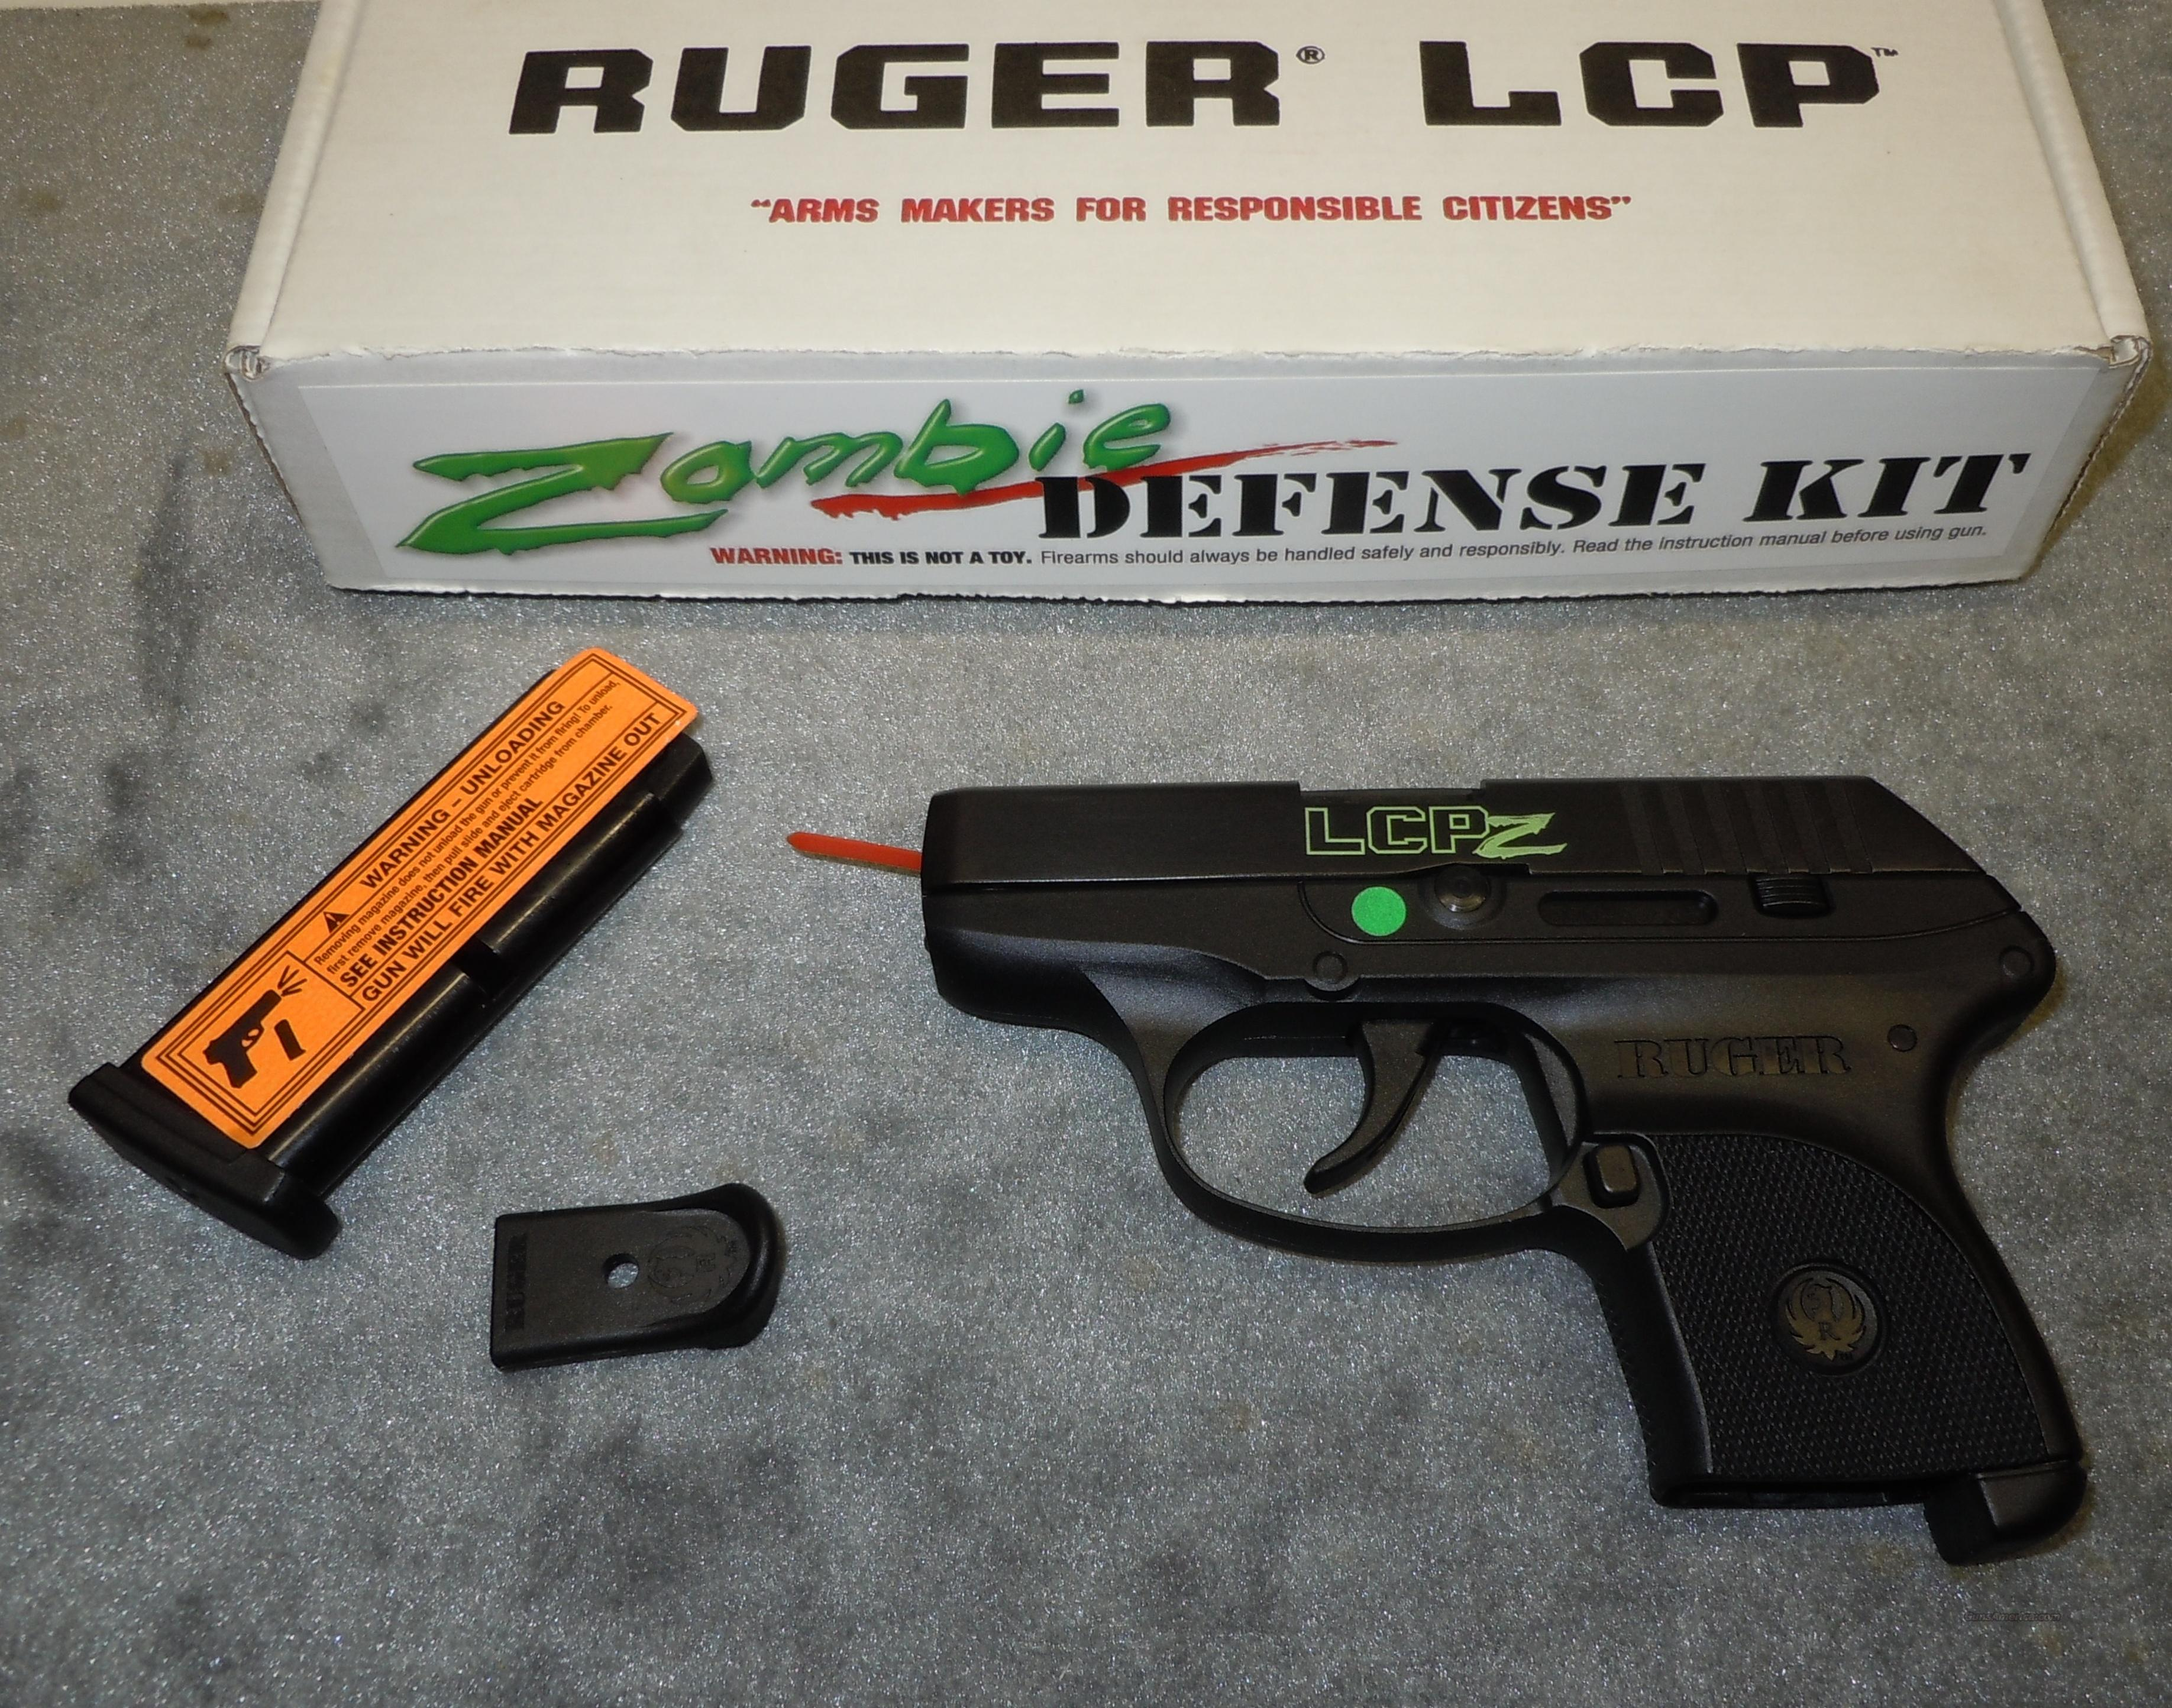 RUGER LCP 380 ACP ZOMBIE DEFENSE KIT